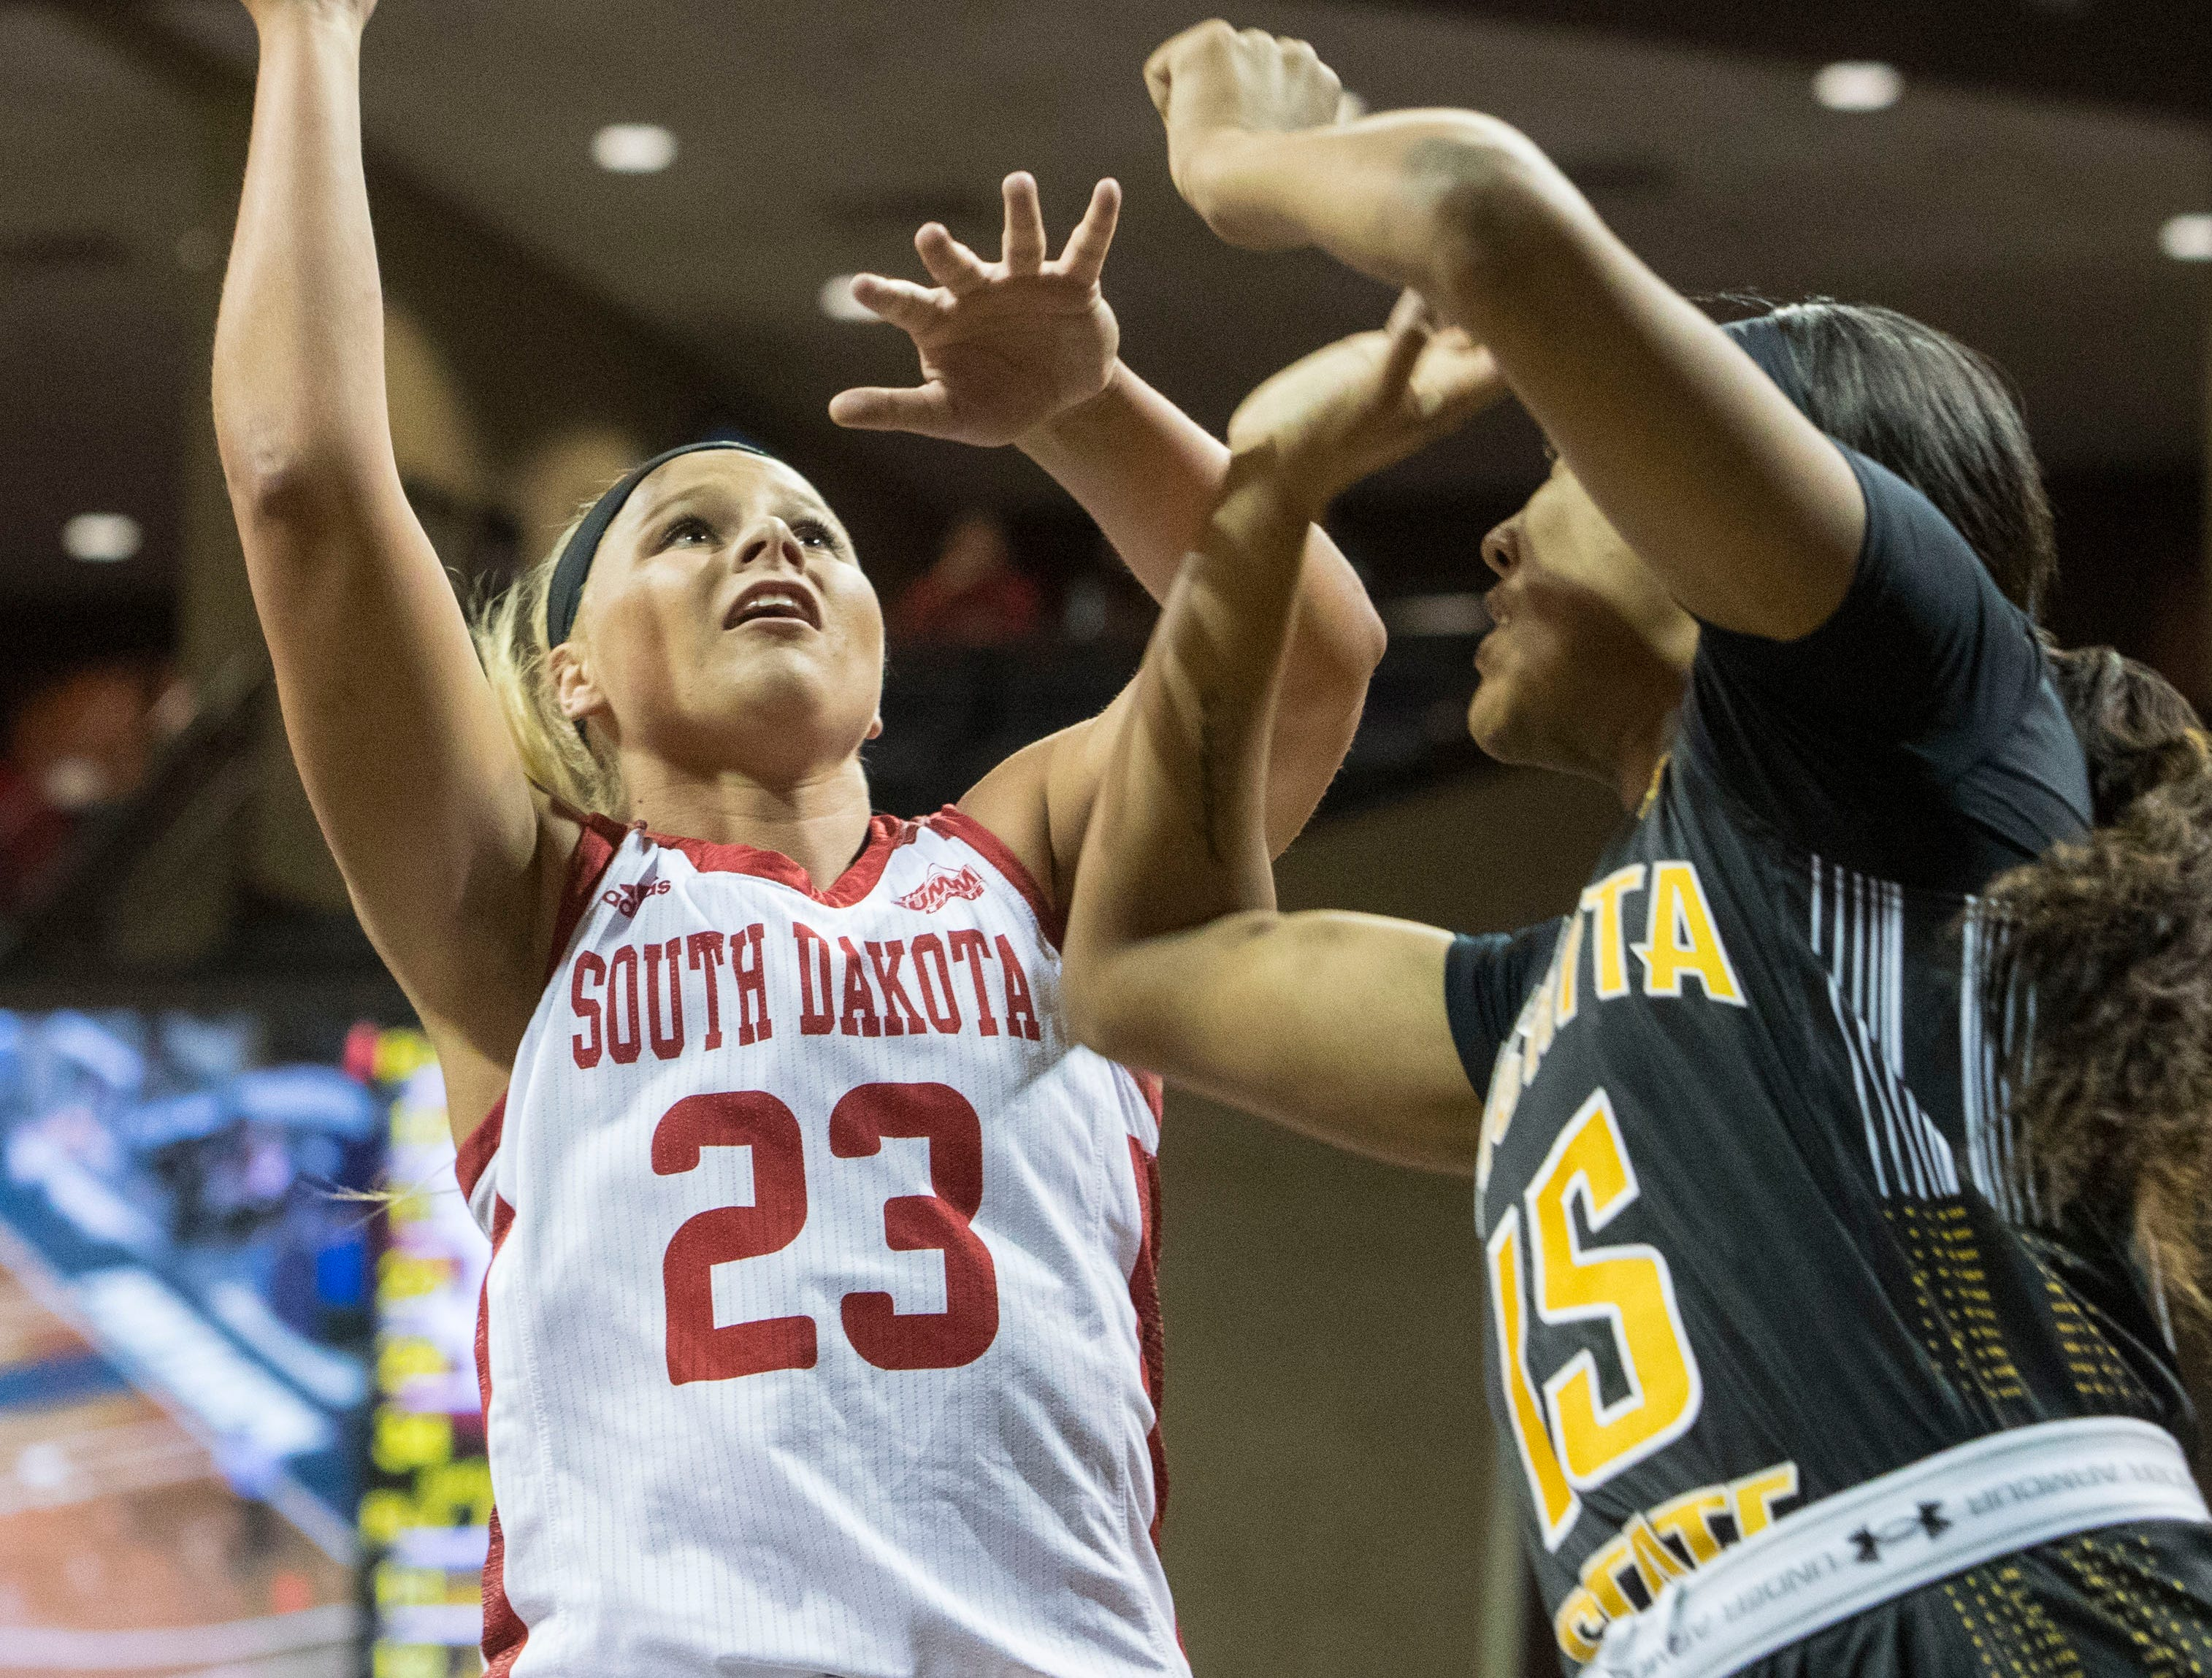 USD's Madison McKeever (23) goes up for a shot during a game against Wichita State at the Sanford Pentagon in Sioux Falls, S.D., Wednesday, Nov. 21, 2018.